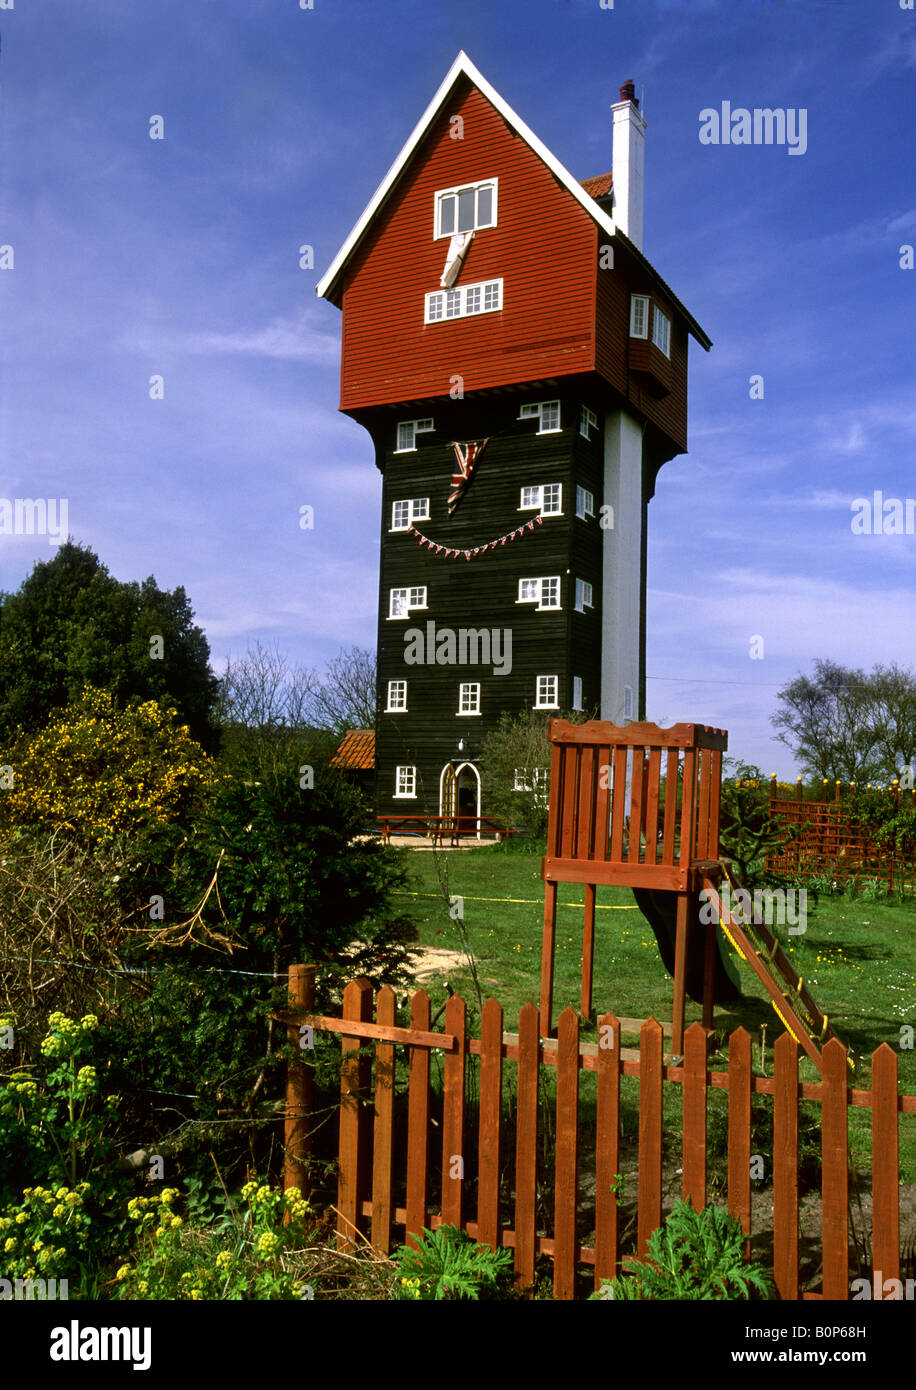 The House in the Clouds Thorpeness Suffolk - Stock Image